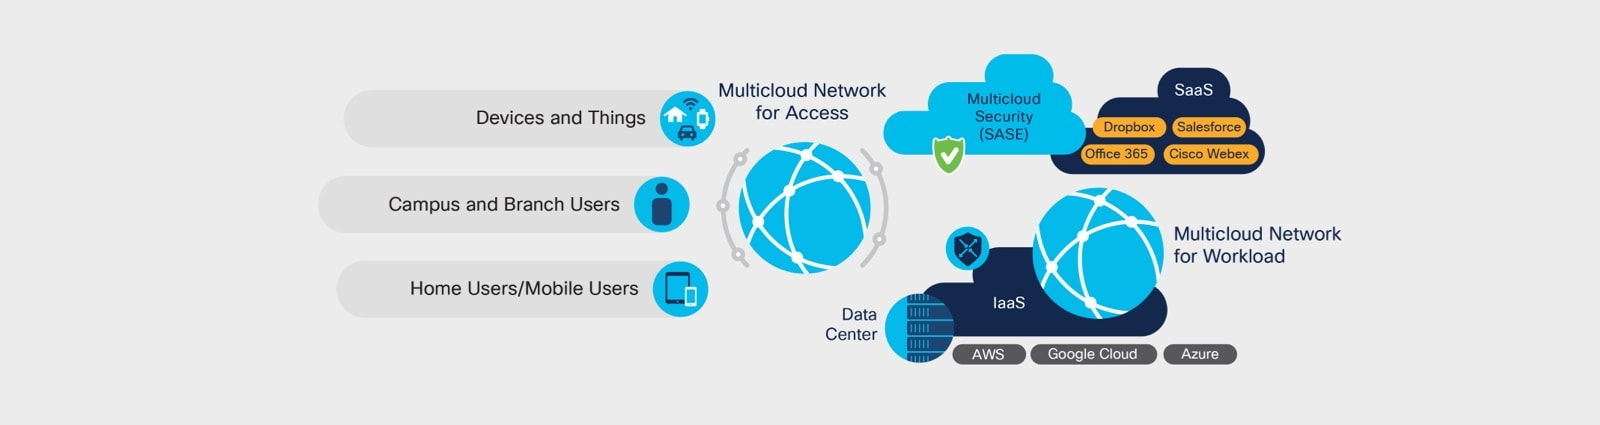 Figure 4. Multicloud network: workload, access and security